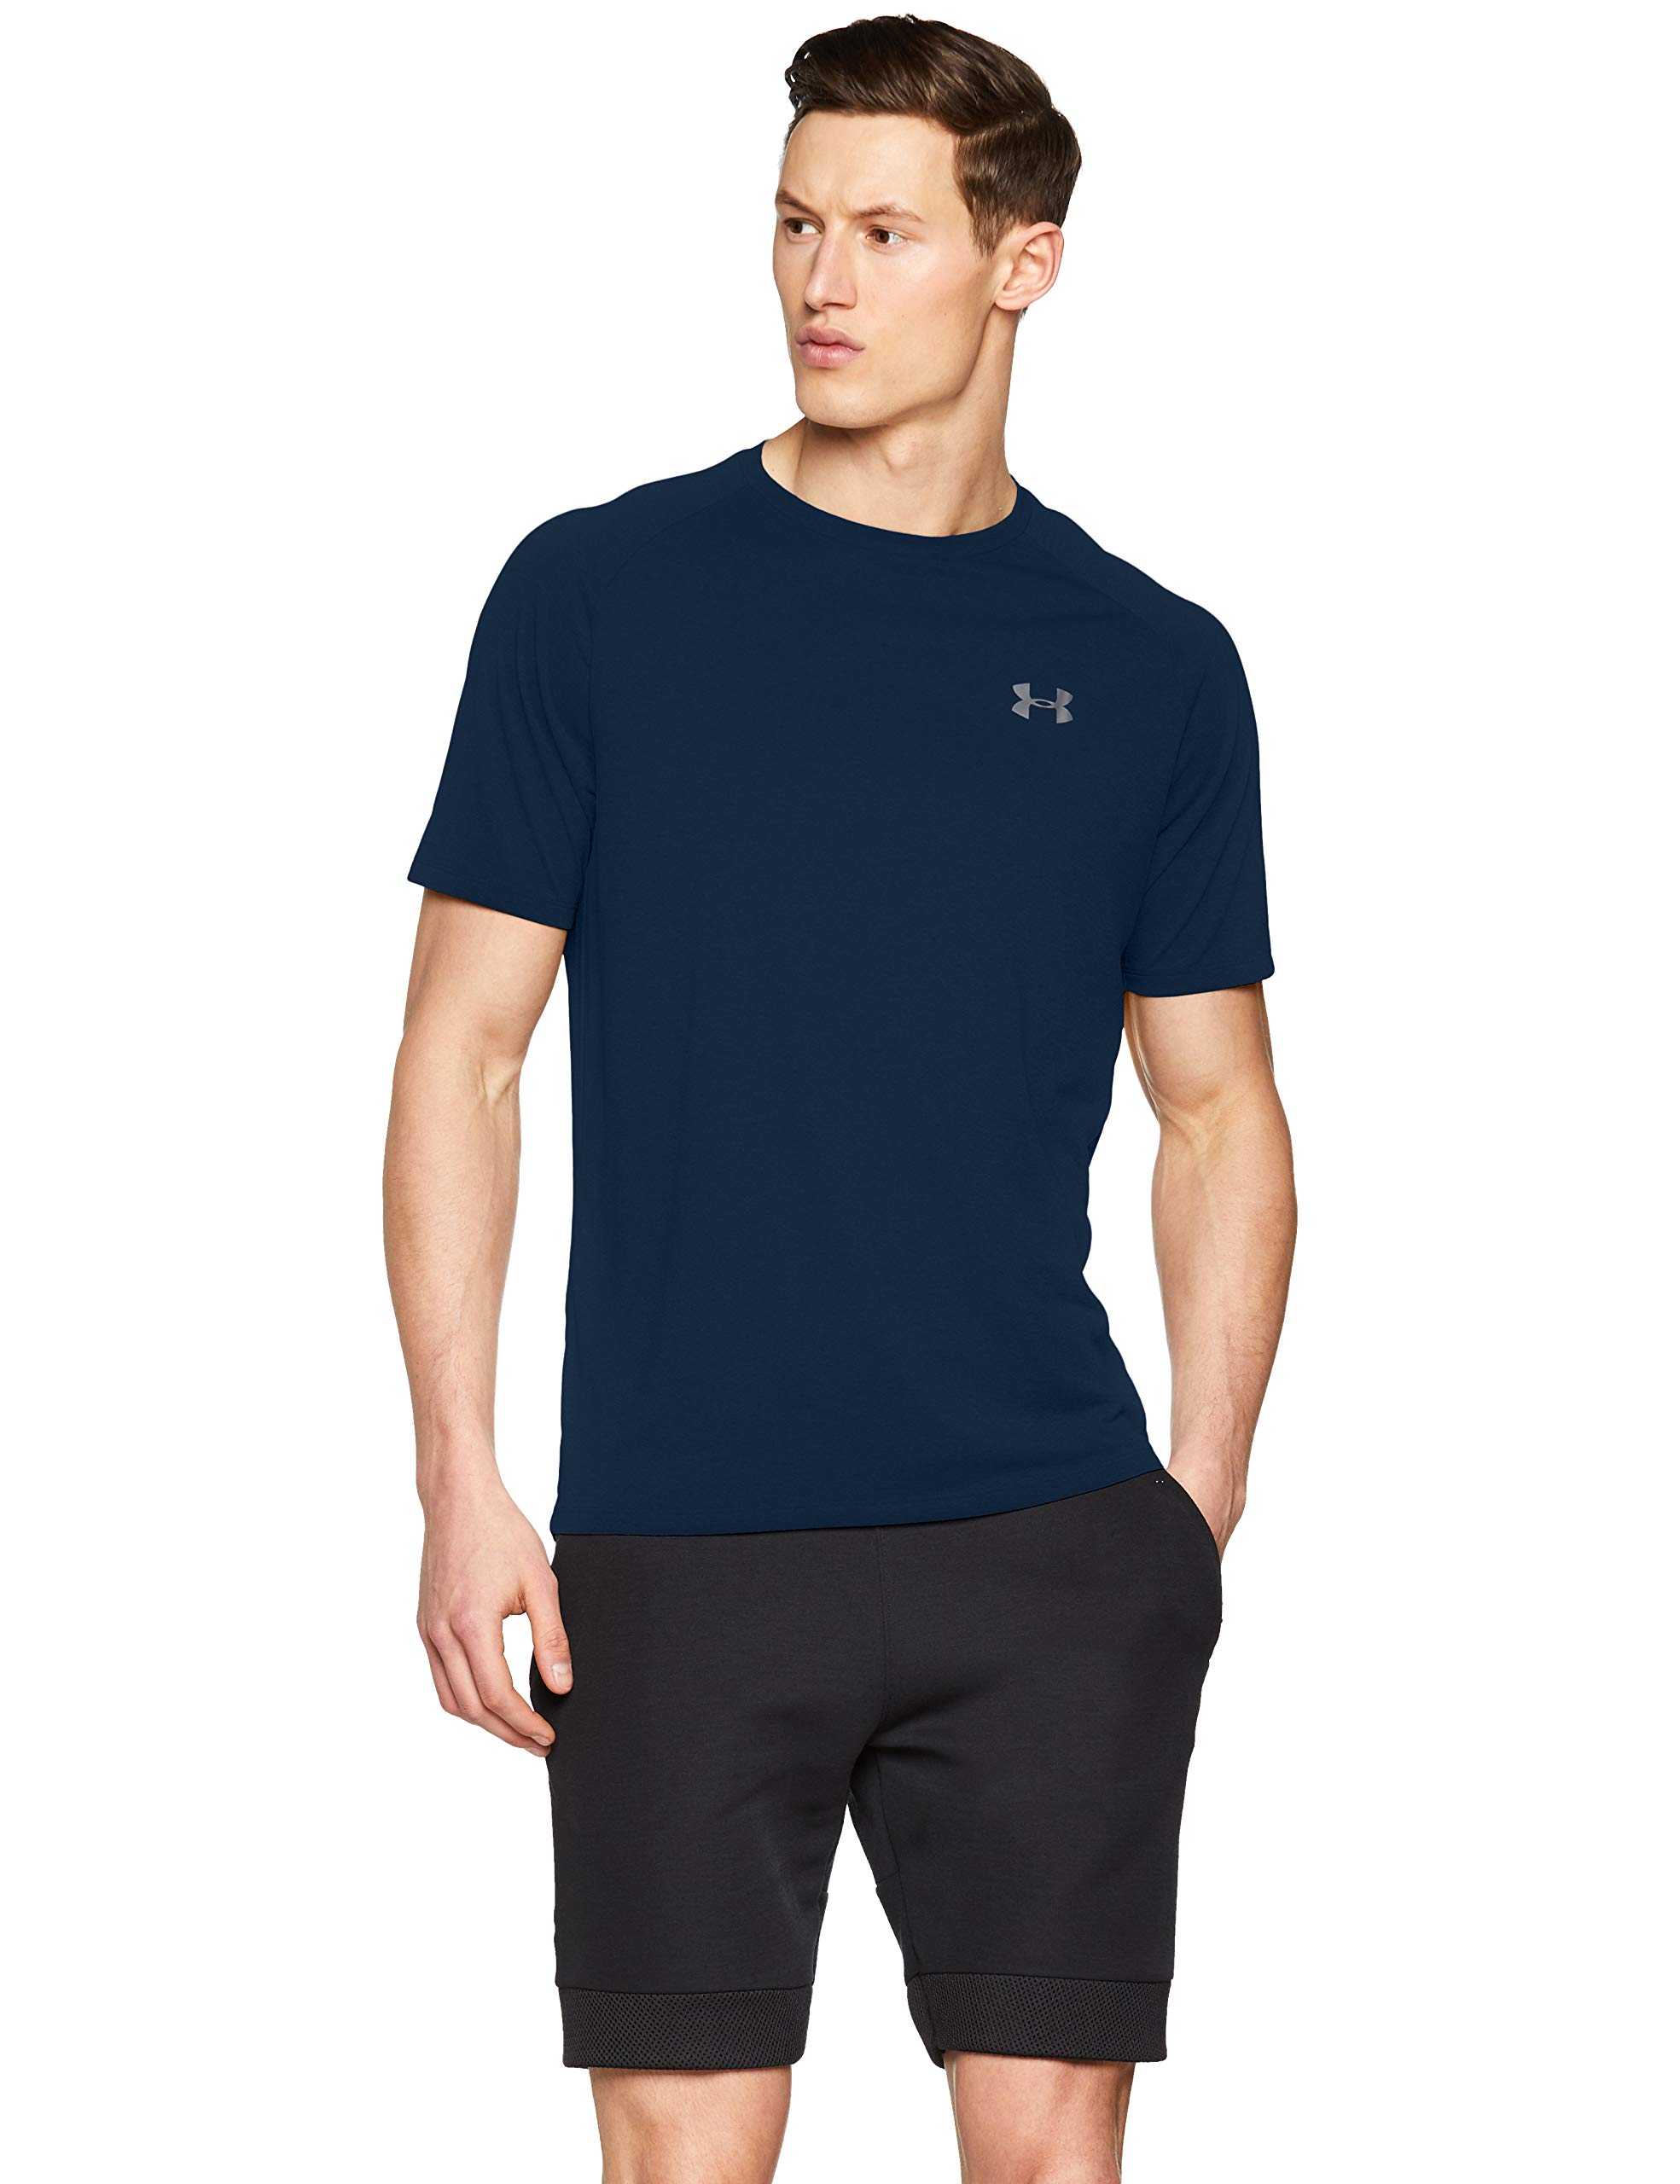 Under Armour Men's Tech 2.0 Short Sleeve T-Shirt, Academy (408)/Graphite, 3X-Large by Under Armour (Image #1)